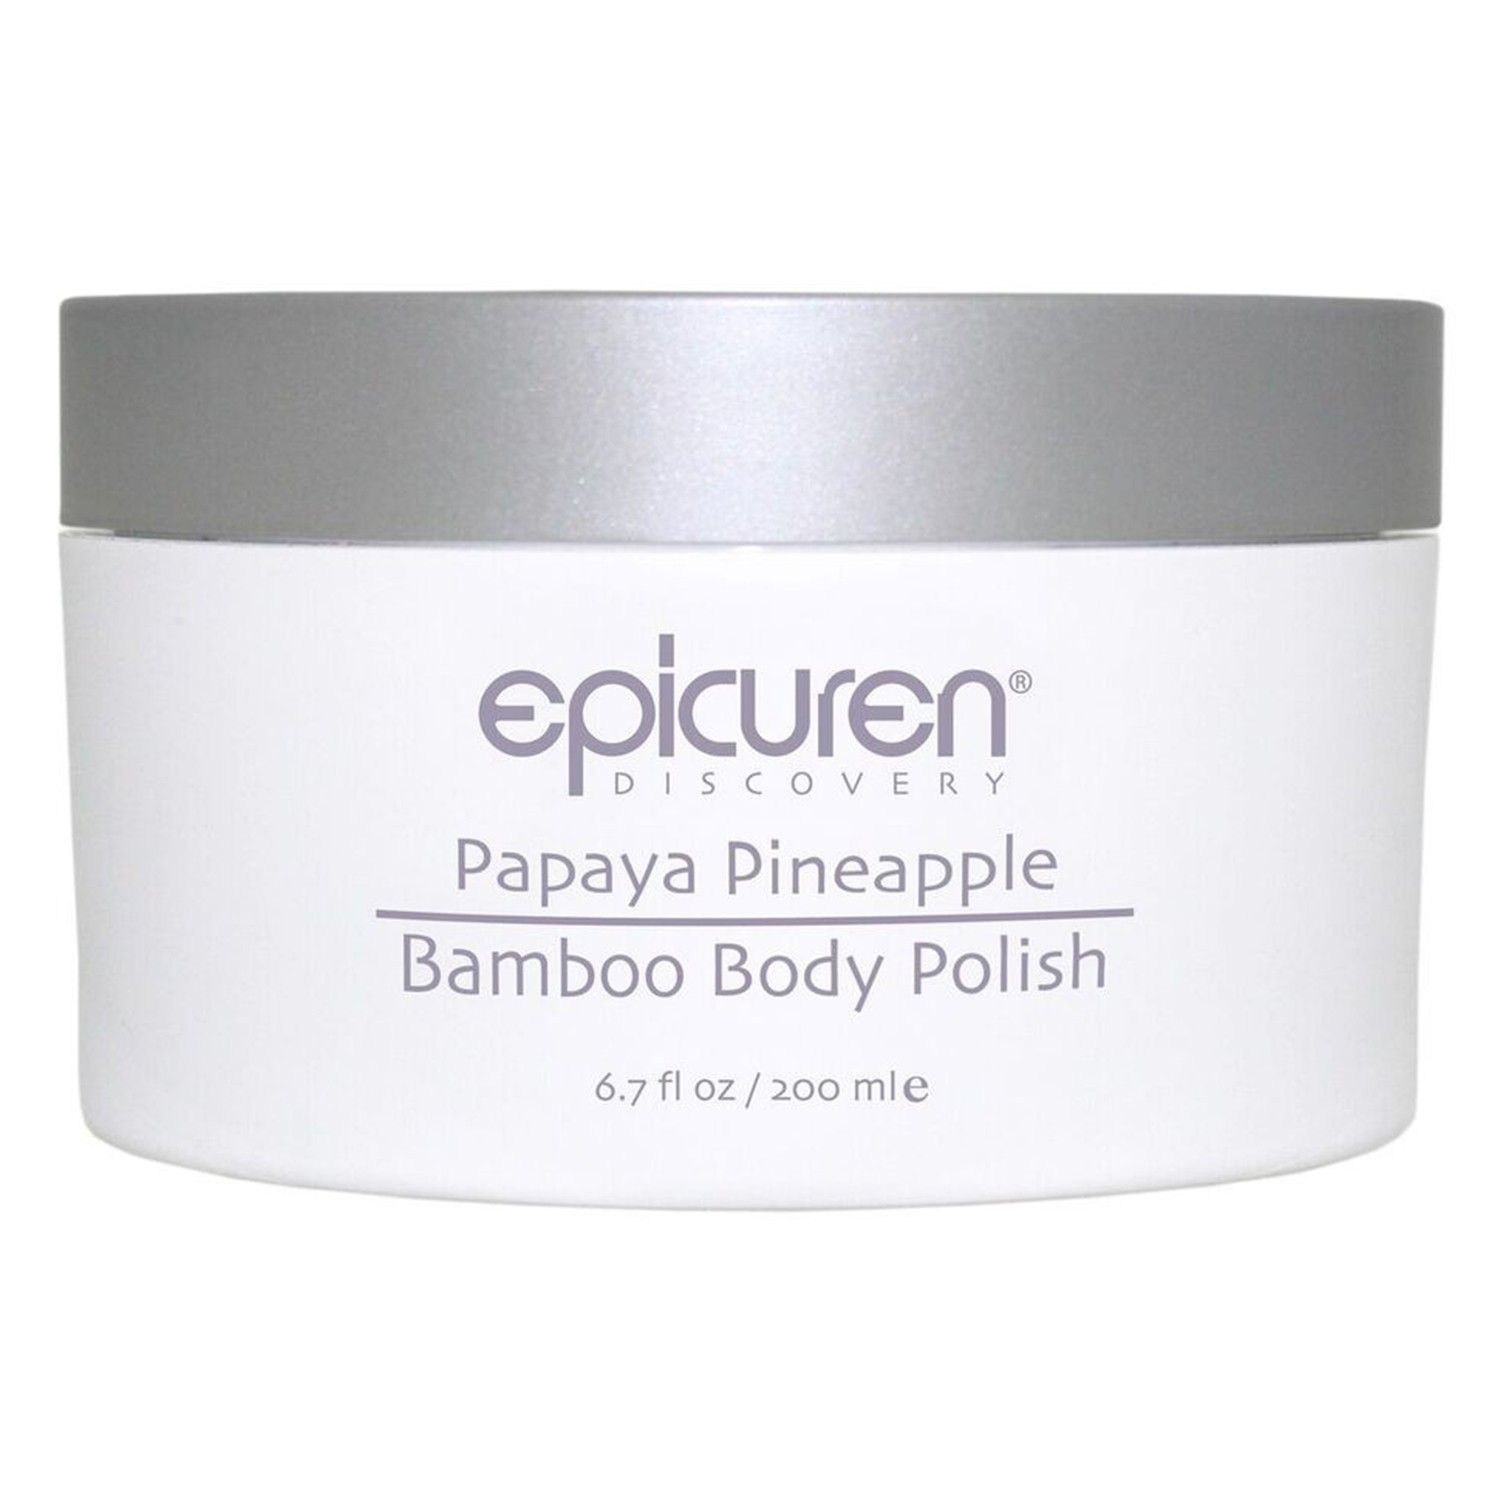 epicuren Discovery Papaya Pineapple Bamboo Body Polish (6.7 fl oz / 200 ml)